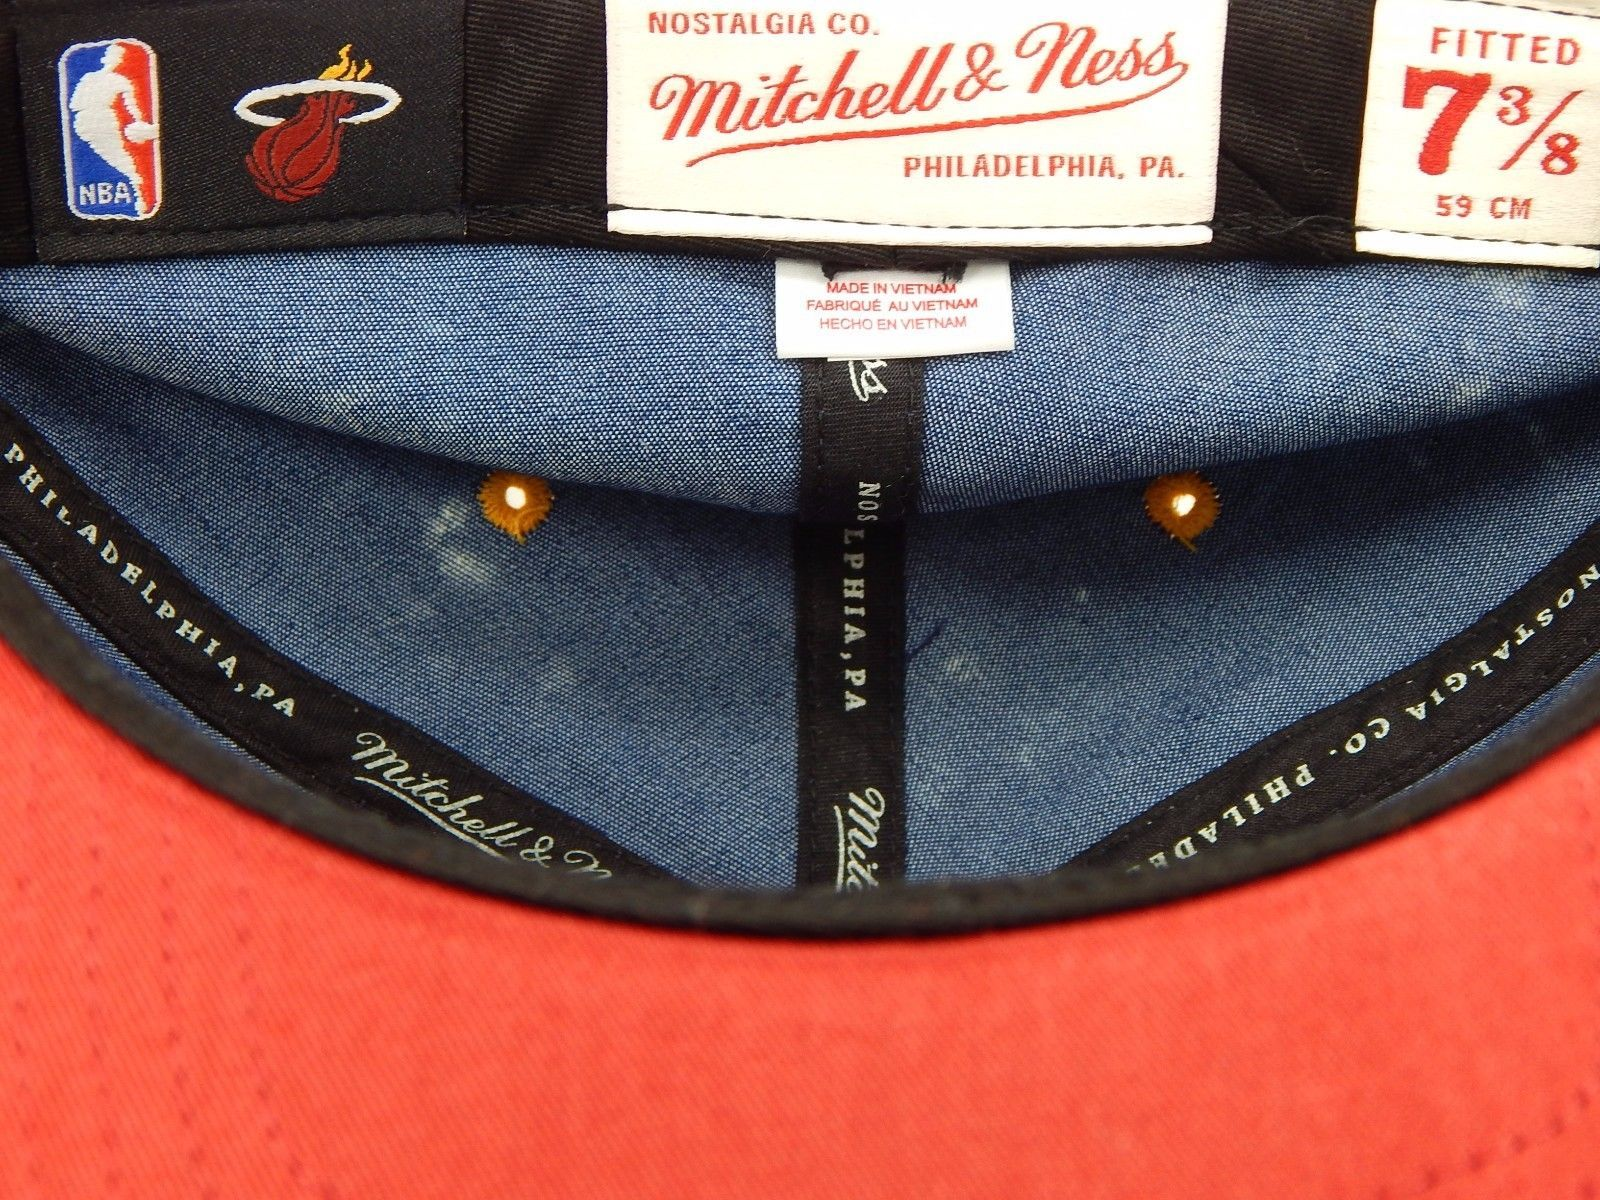 Miami Heat Mitchell & Ness Size 7 3/8 Crown Fitted NBA Cap Hat Blue Jeans Denim